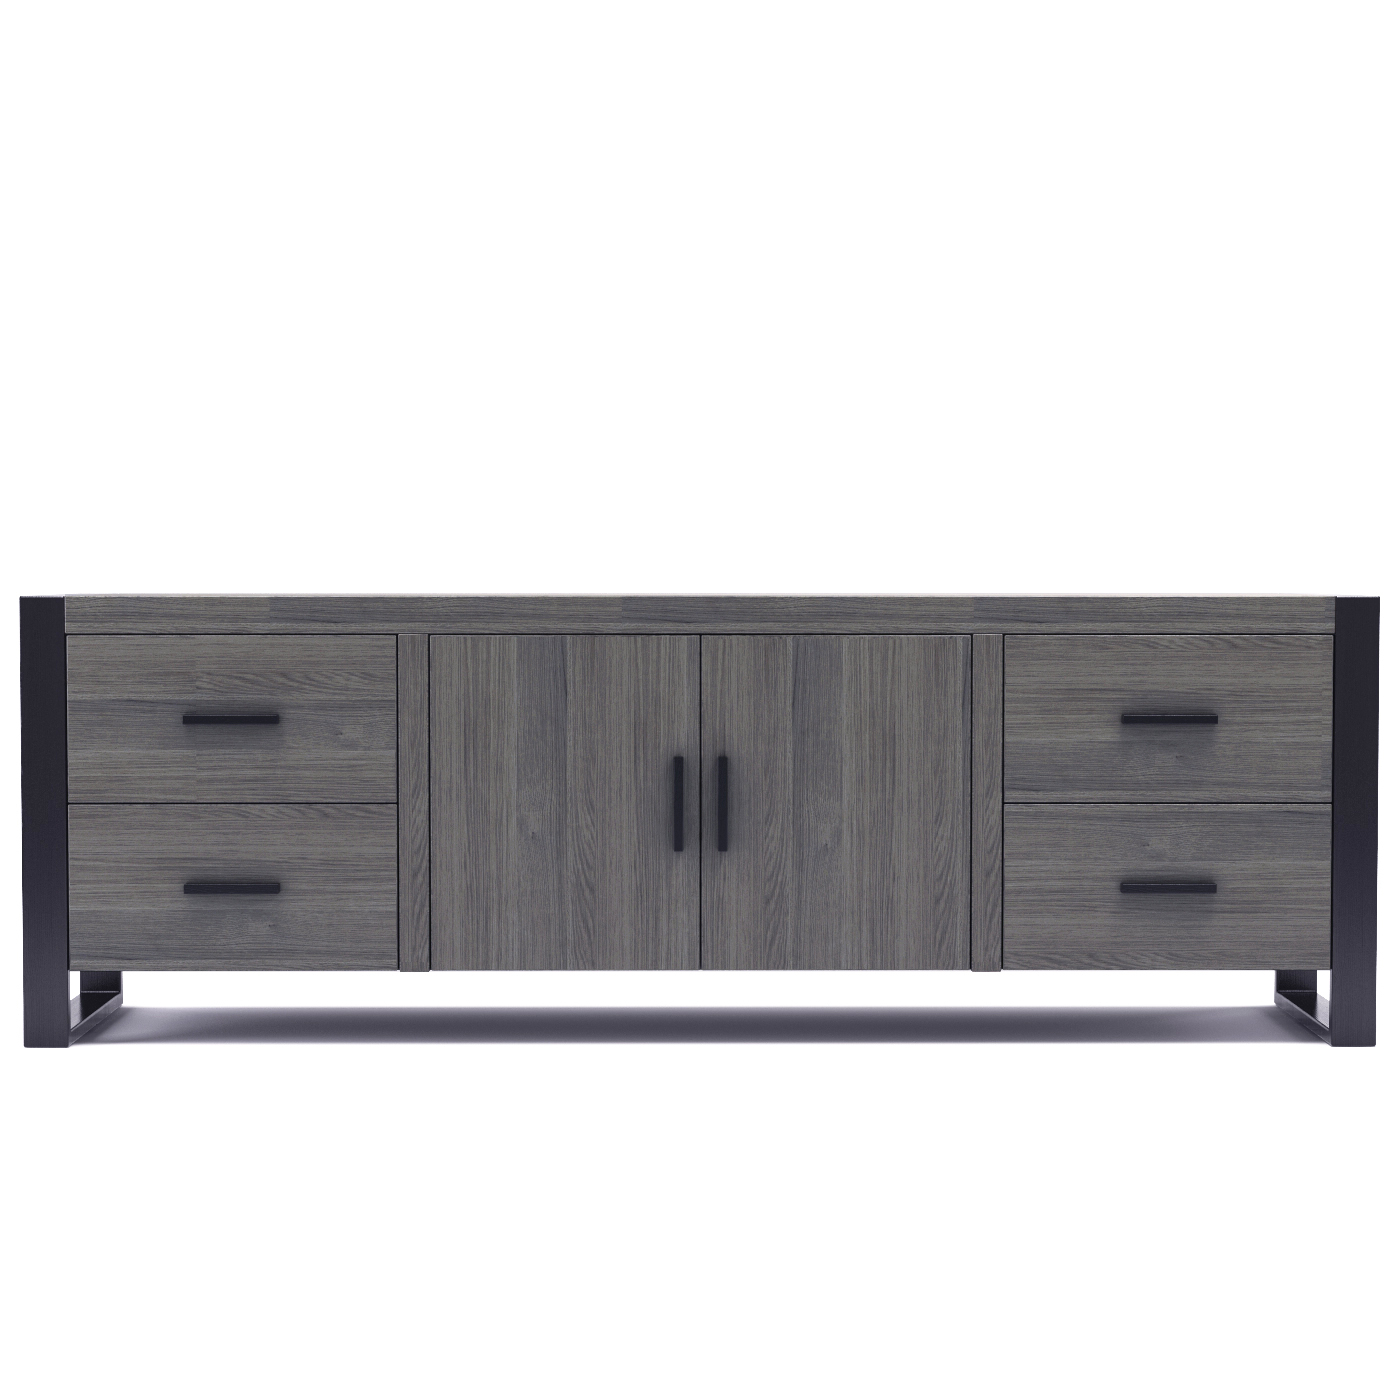 Furniture: Dexter 70 Inch Tv Stand In Ash Grey And Black For Annabelle Black 70 Inch Tv Stands (View 15 of 20)